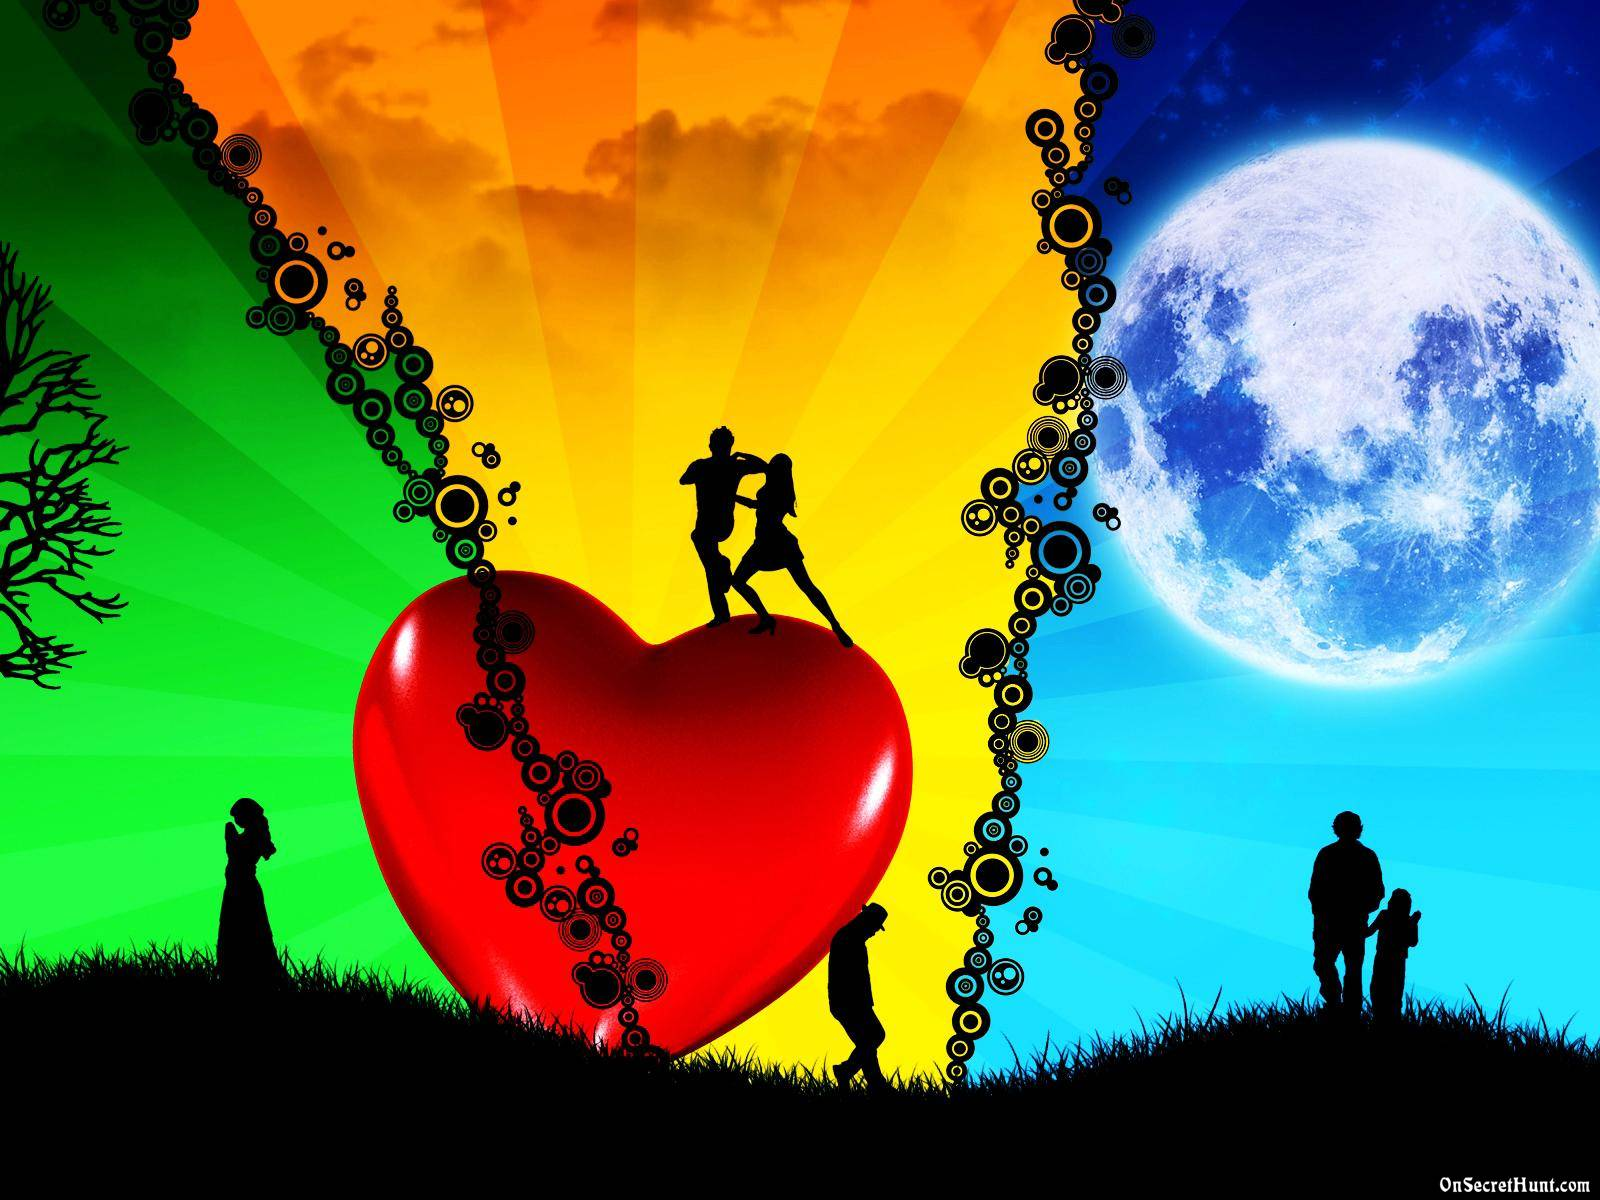 Love couple Wallpaper In 3d : Love Wallpapers 3D - Wallpaper cave